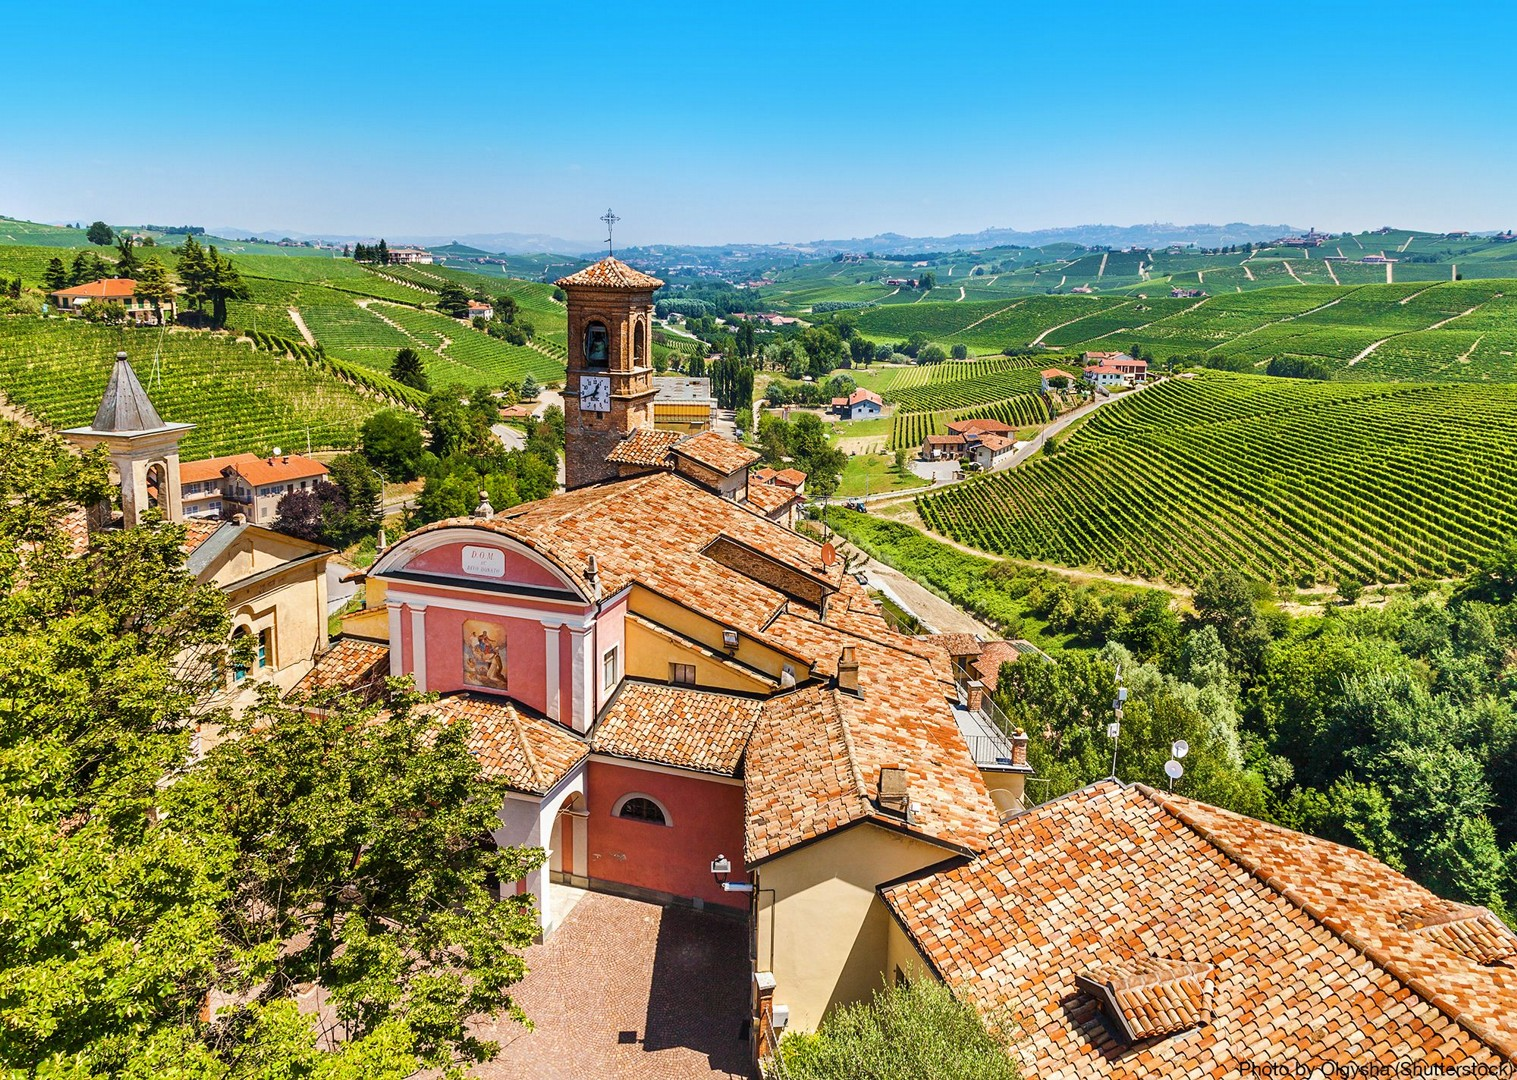 canale-barolo-alba-asti-regions-of-italy-tour-on-bikes-skedaddle.jpg - Italy - Piemonte - Vineyards and Views - Self-Guided Leisure Cycling Holiday - Italia Leisure and Family Cycling